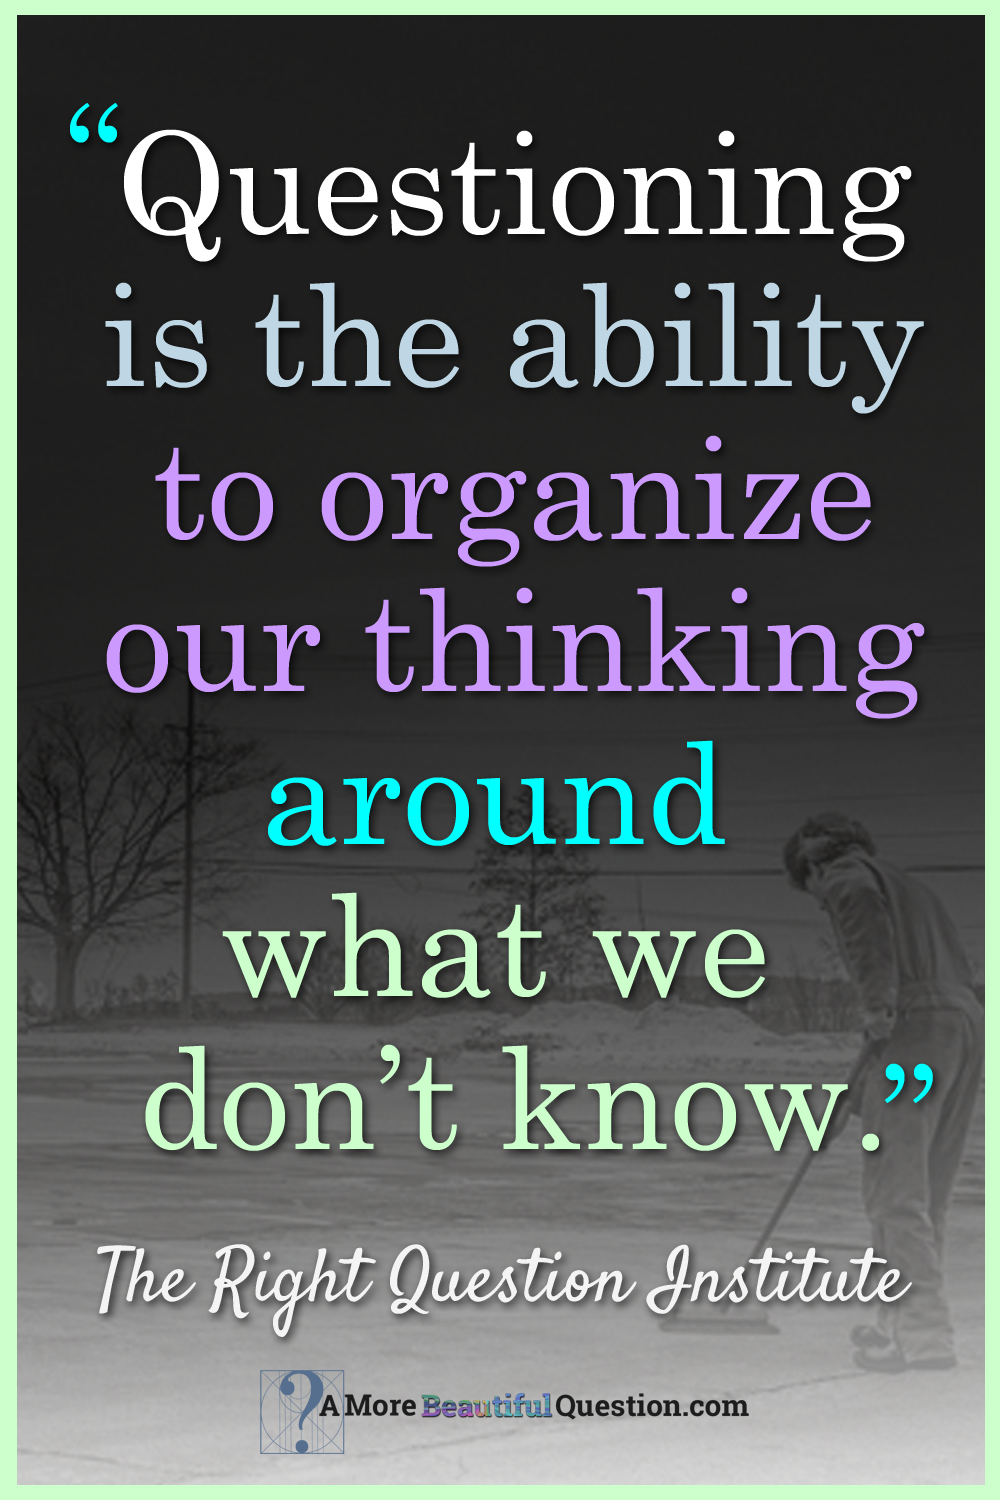 Wonderful quotes about questioning, curiosity, and inquiry